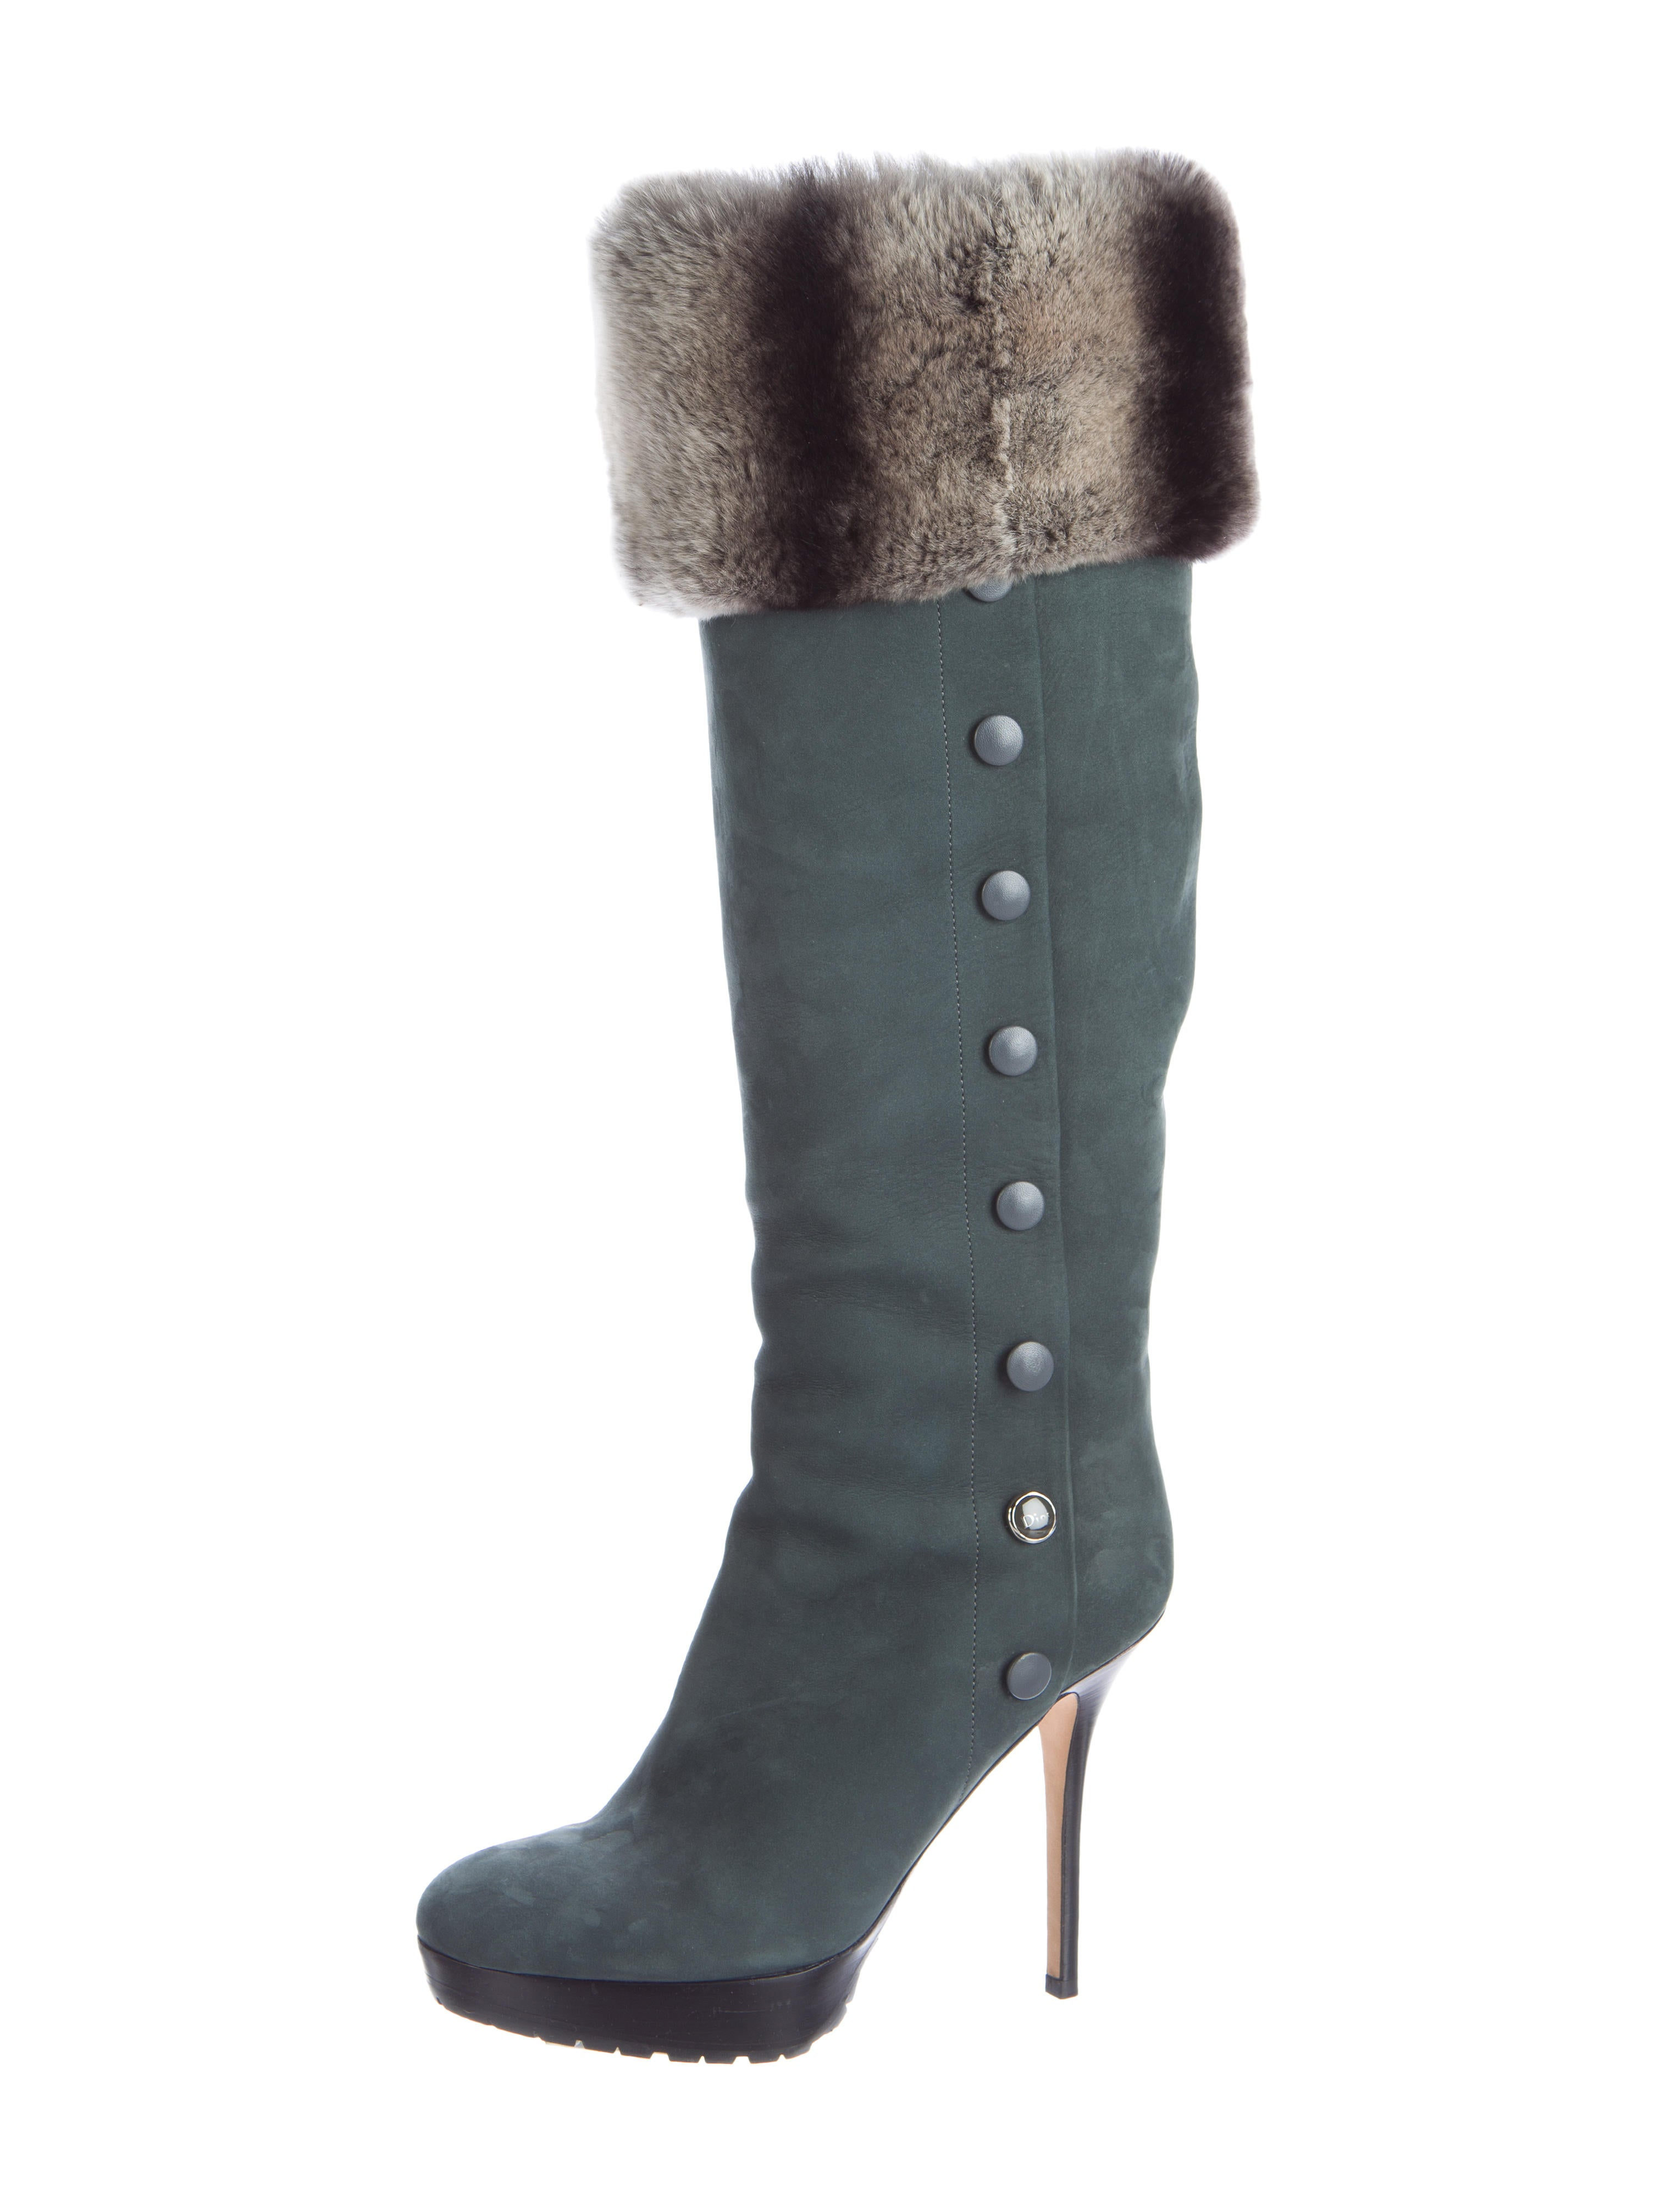 christian fur trimmed suede boots shoes chr45937